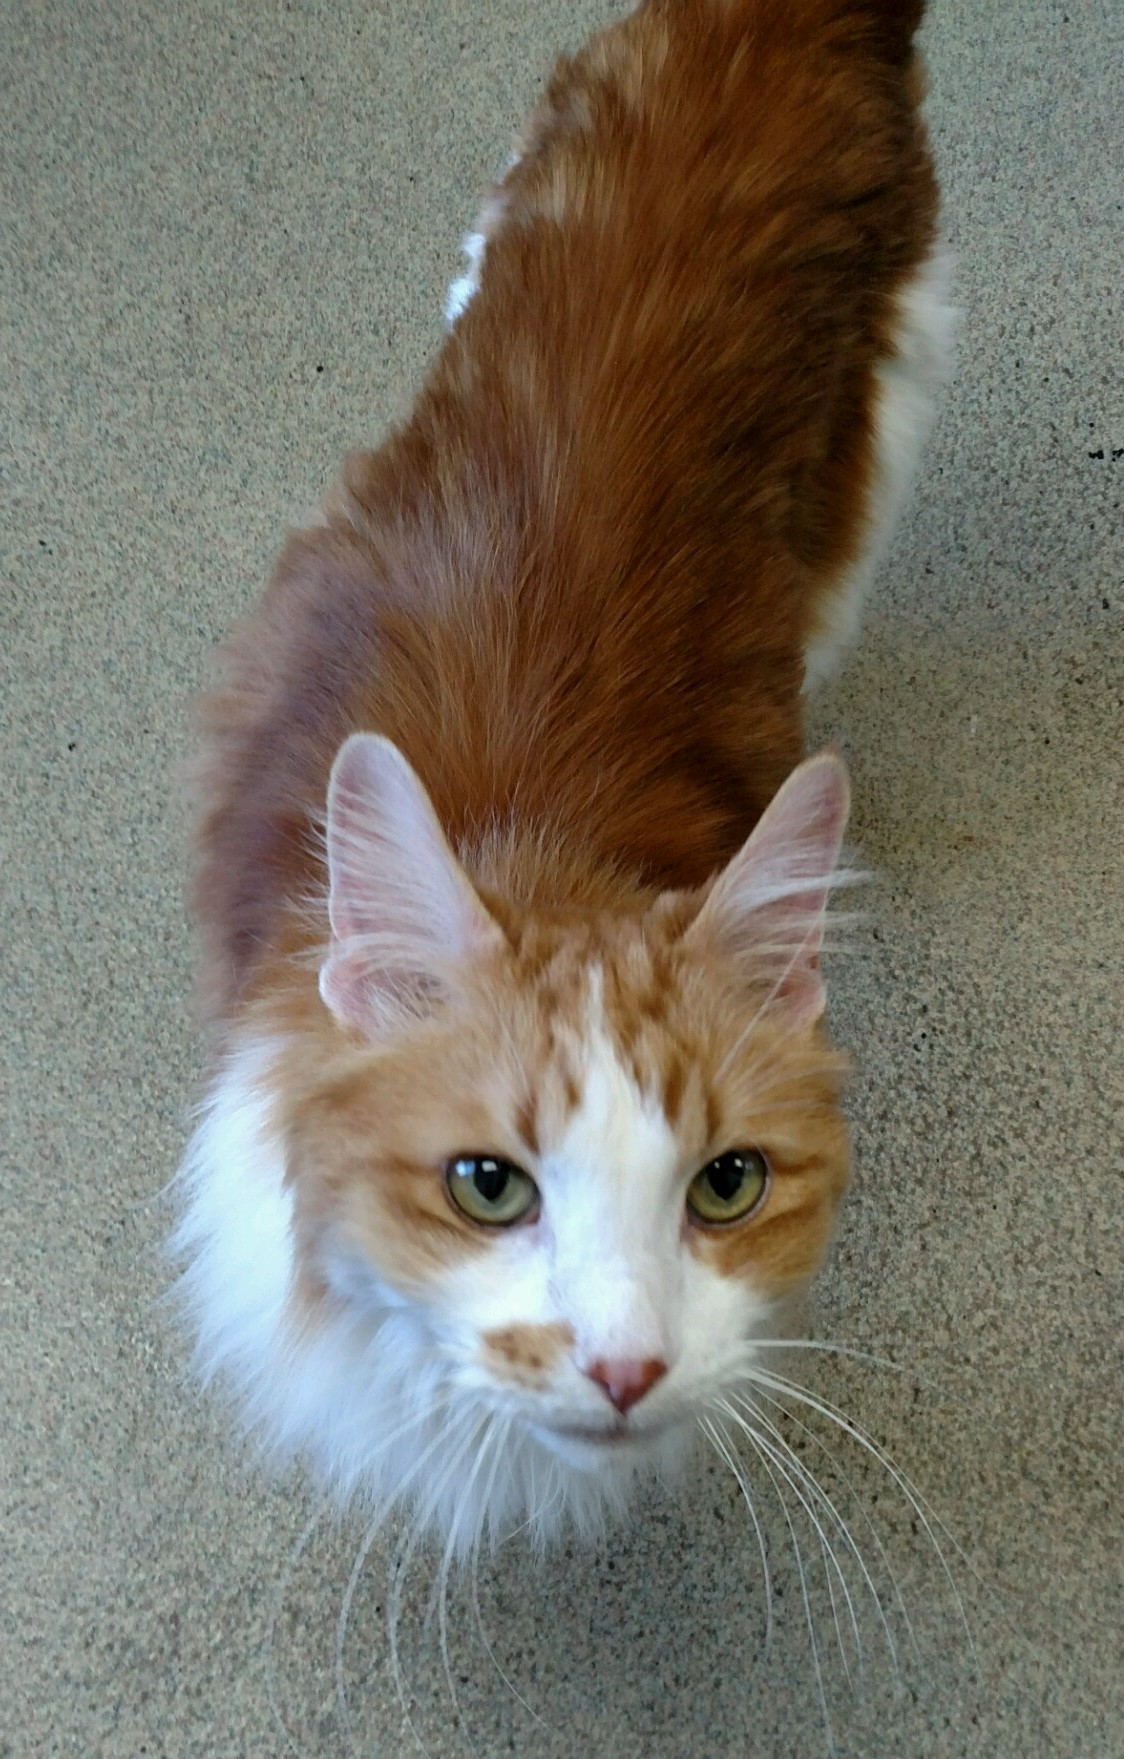 Purcy is an 11 year old Domestic Long Haired Mix. The original owner passed away and he ended up at HAWS. He is very social and a talker.